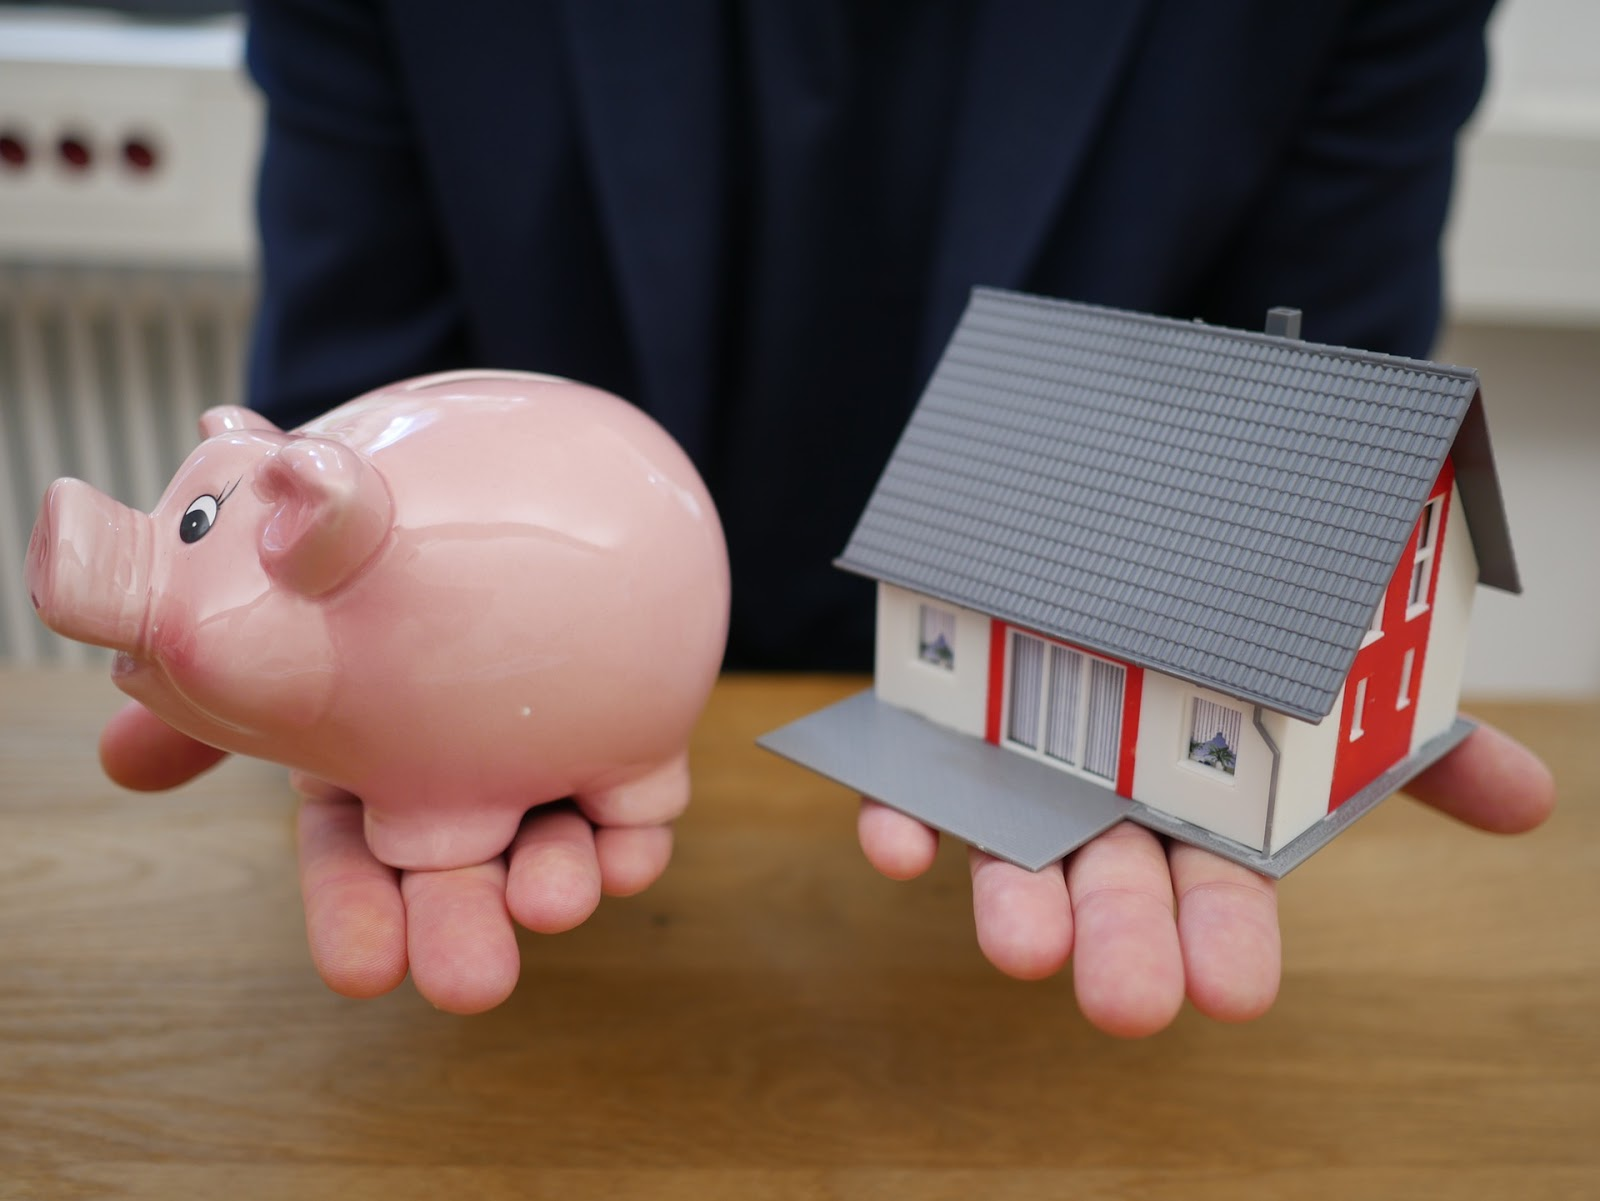 a young person learning how to adult holds a piggy bank in one hand and a model of a house in another